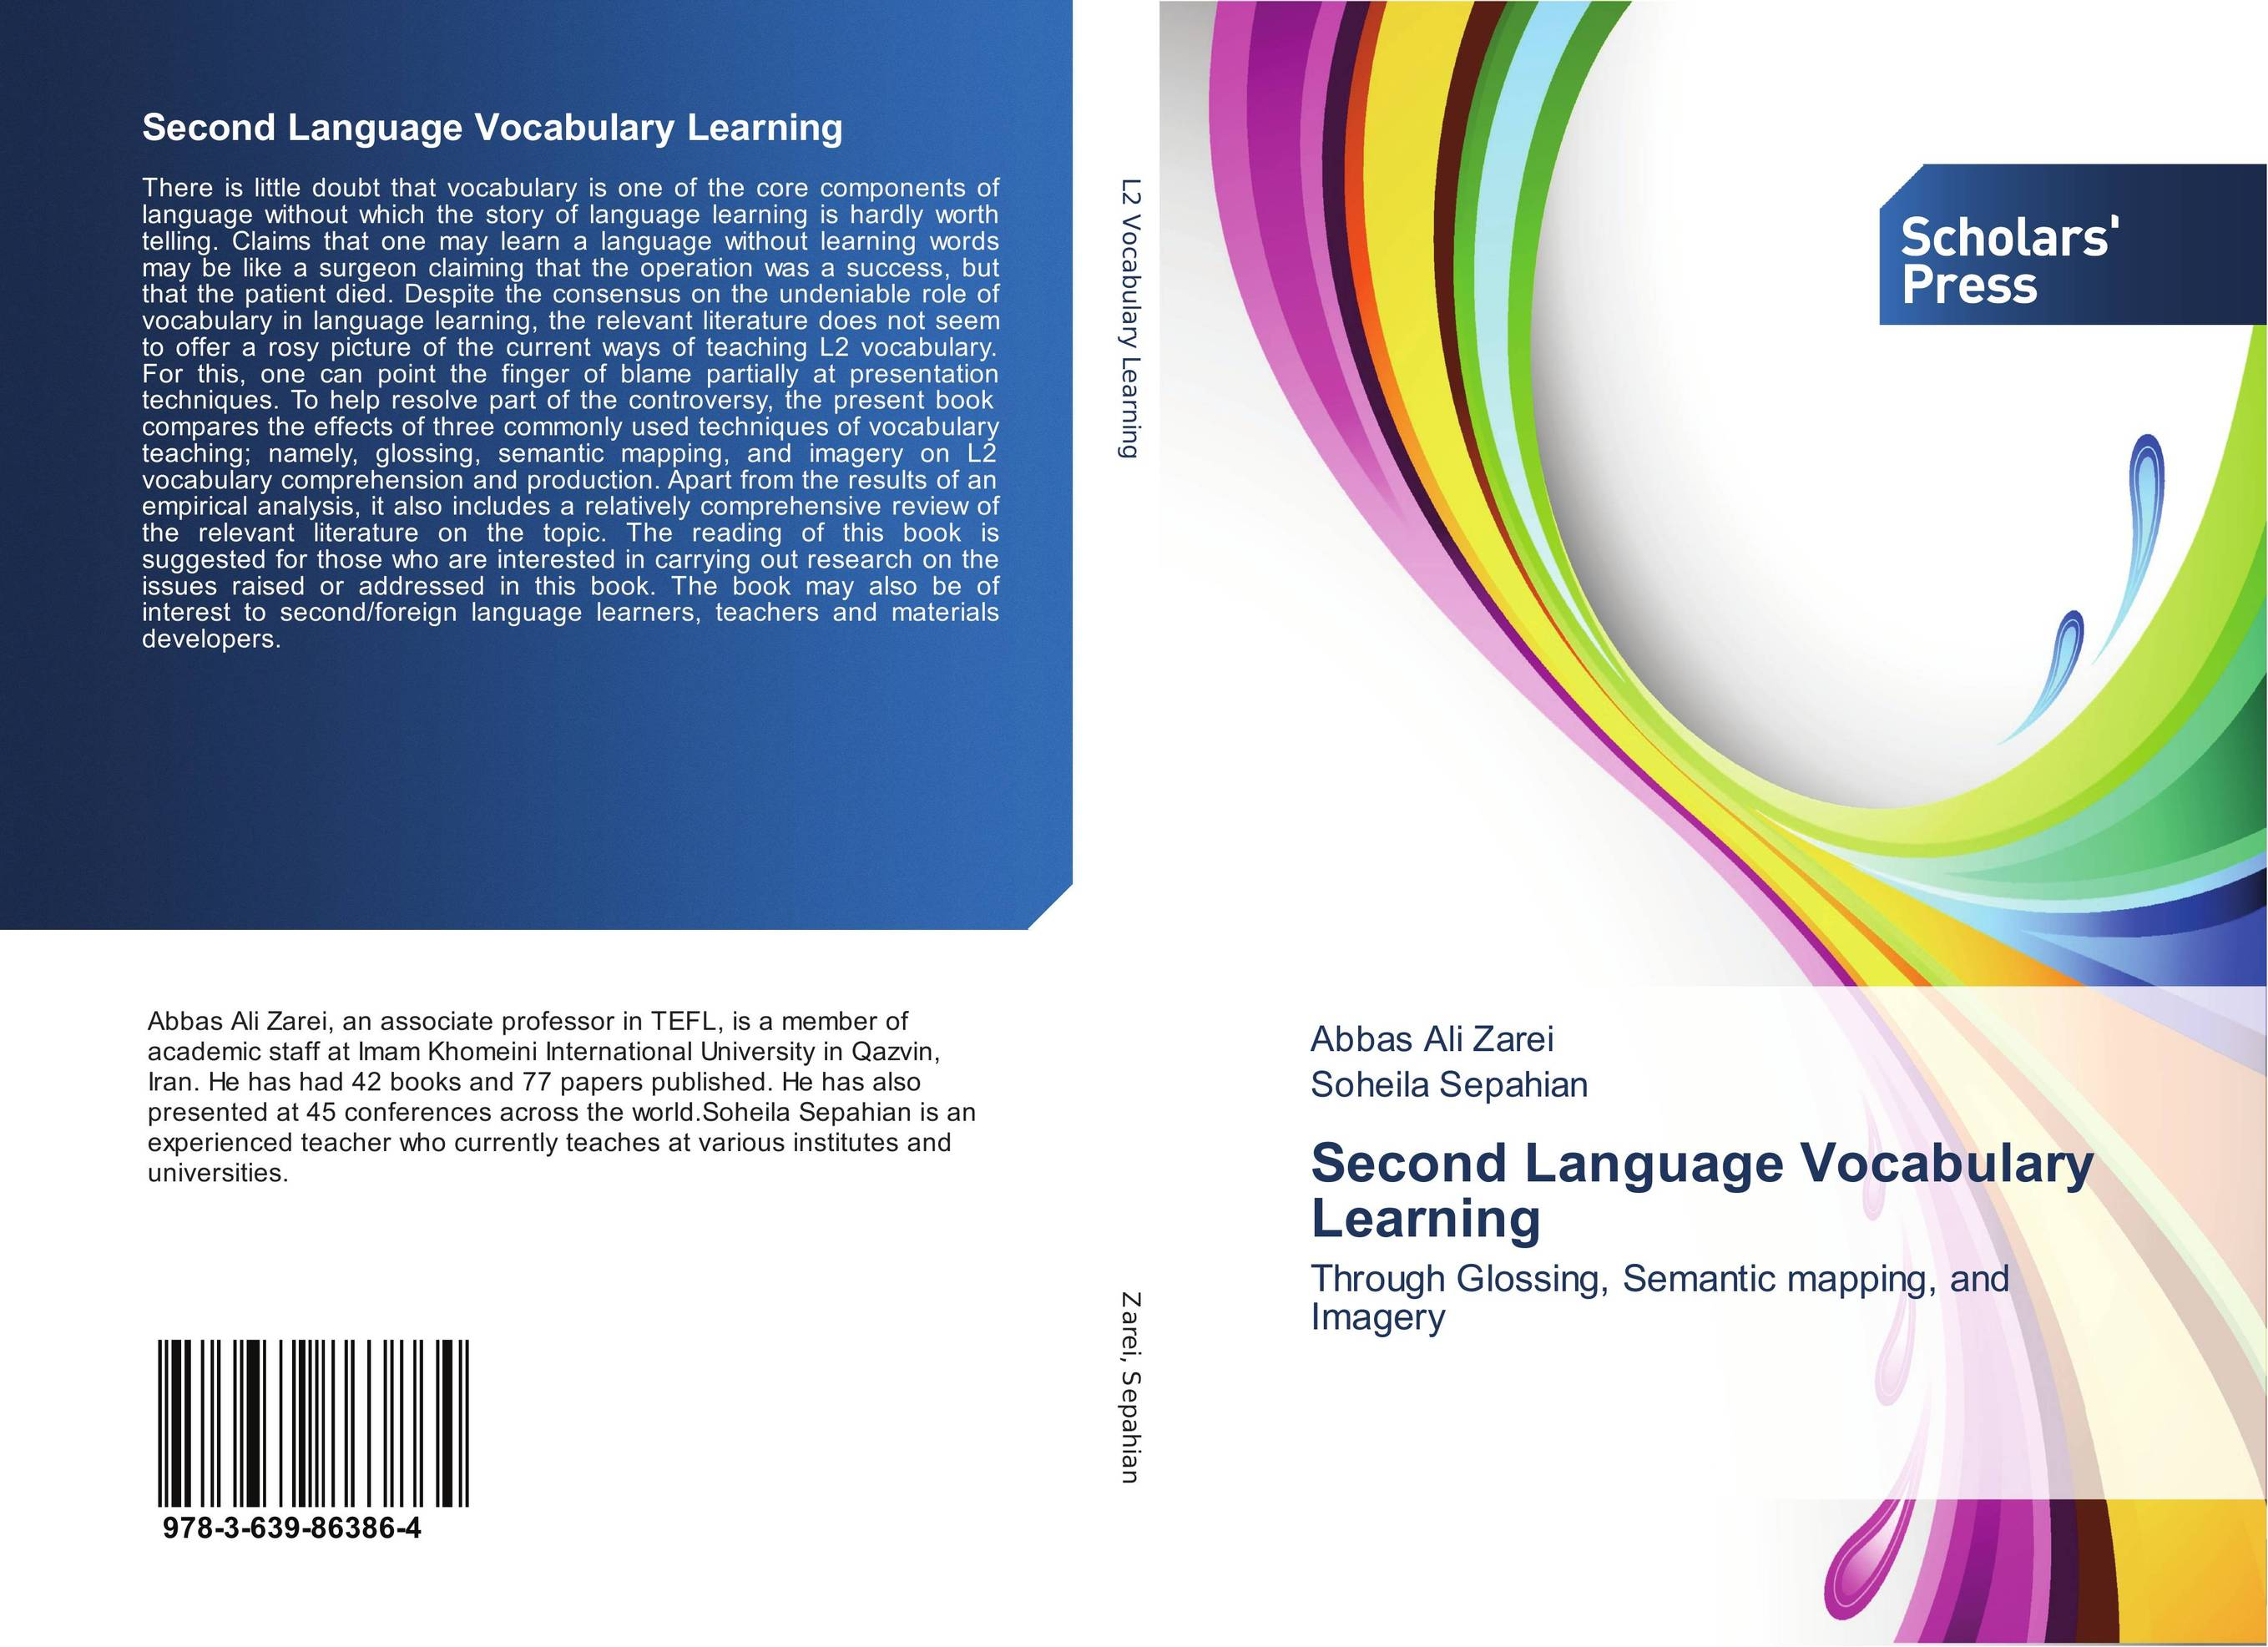 Second Language Vocabulary Learning the impact of vocabulary strategies on short and long term retention